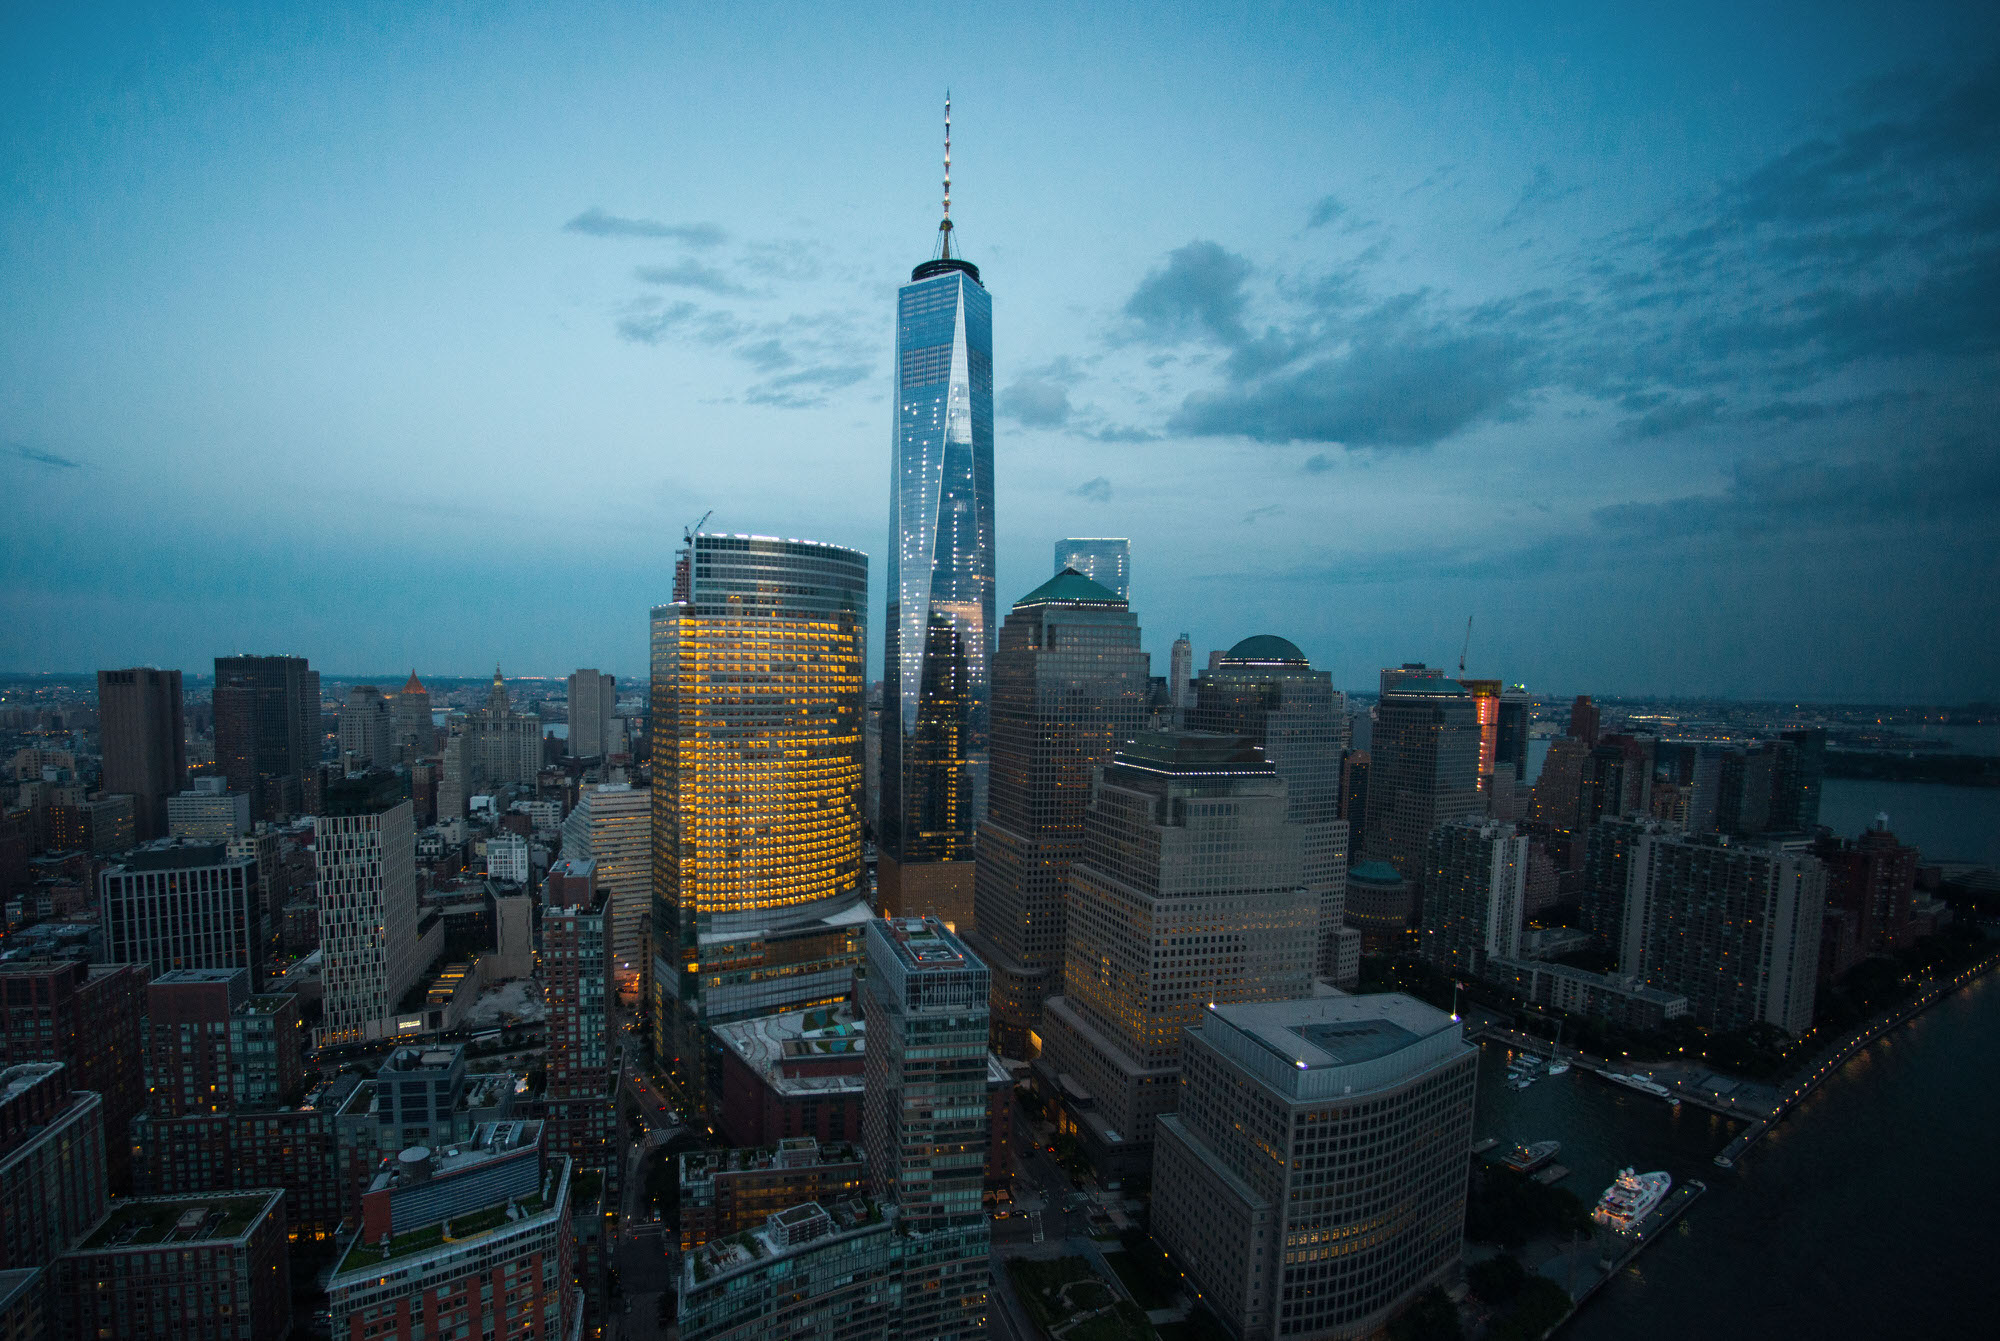 One World Trade Center stands the Lower Manhattan skyline at dusk in this aerial photograph taken above New York, U.S., on Friday, June 19, 2015. The Standard & Poor's 500 Index fell, with the gauge dropping below its price for the past 50 days, while Treasuries retreated. Photographer: Craig Warga/Bloomberg